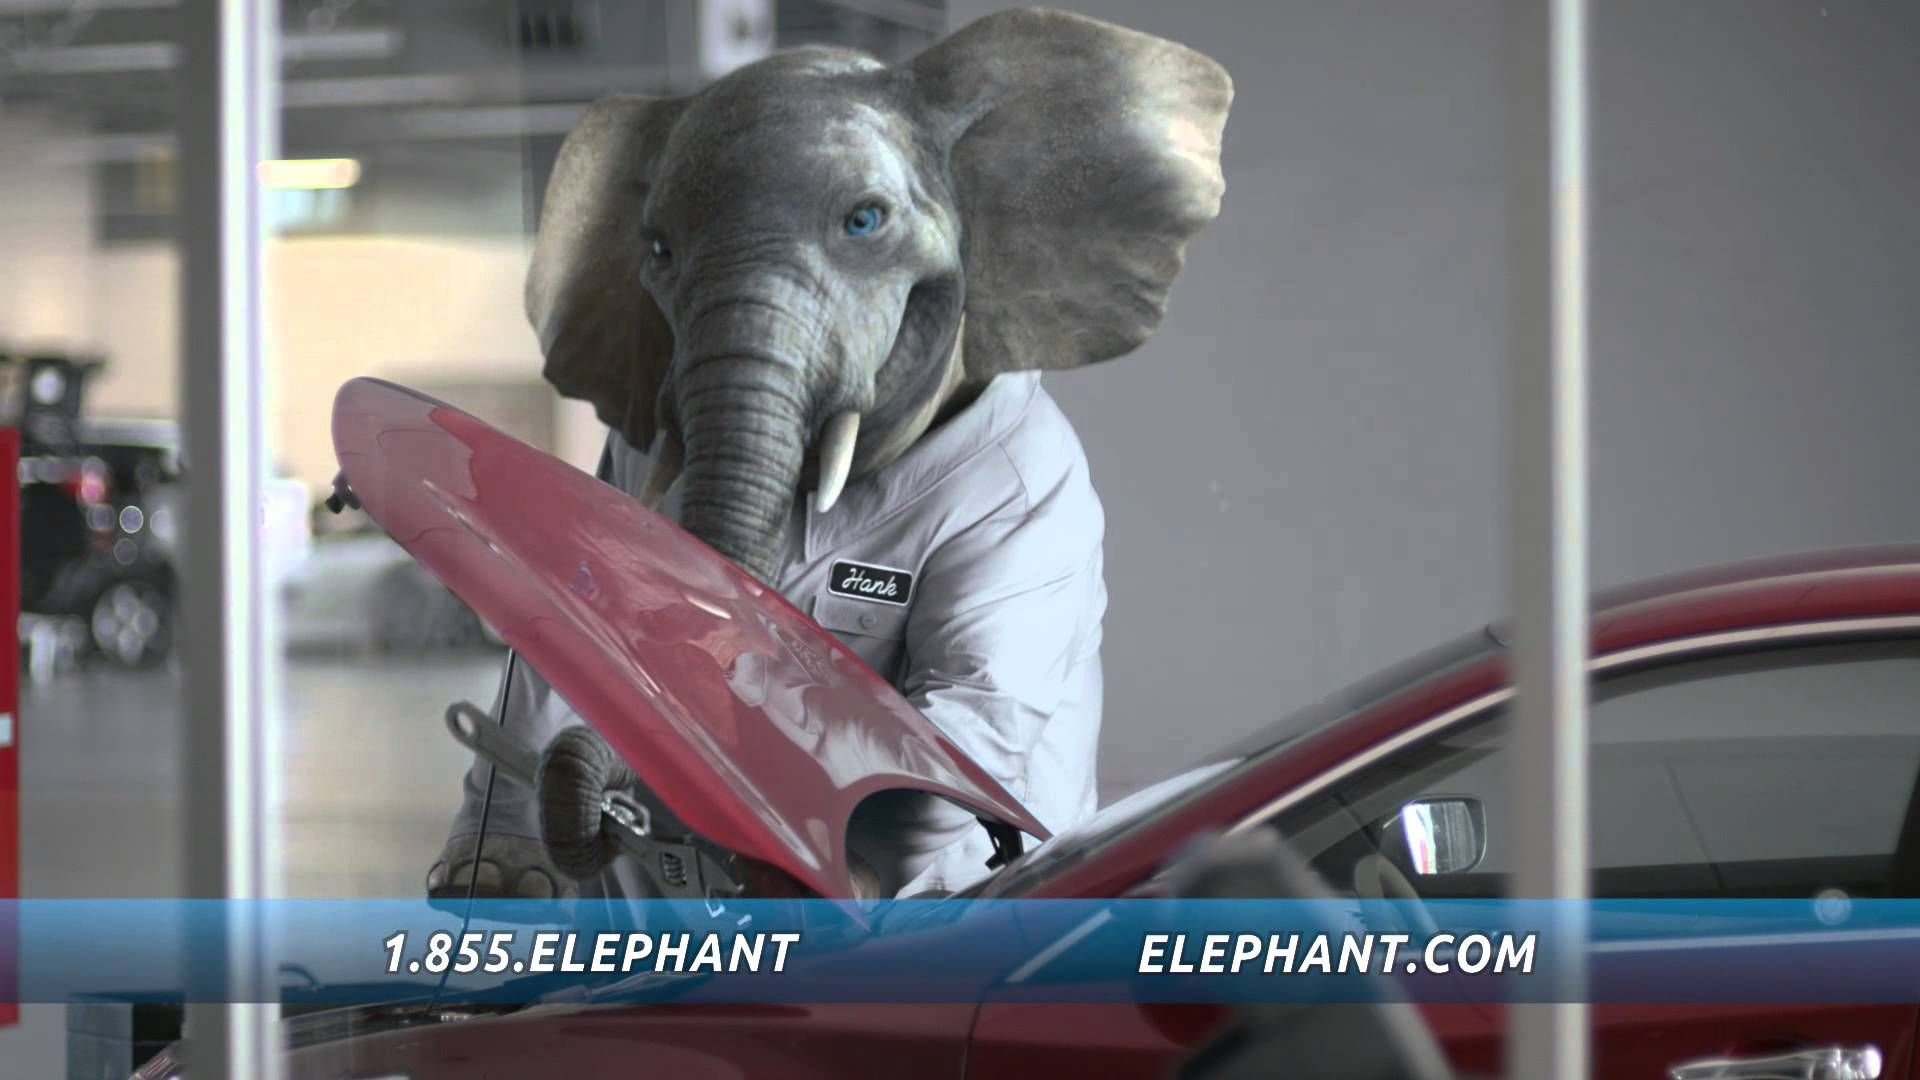 Elephant Auto Insurance Quote Mesmerizing This Elephant Insurance Commercial Was Shot In The Allsteel Dallas . Design Ideas